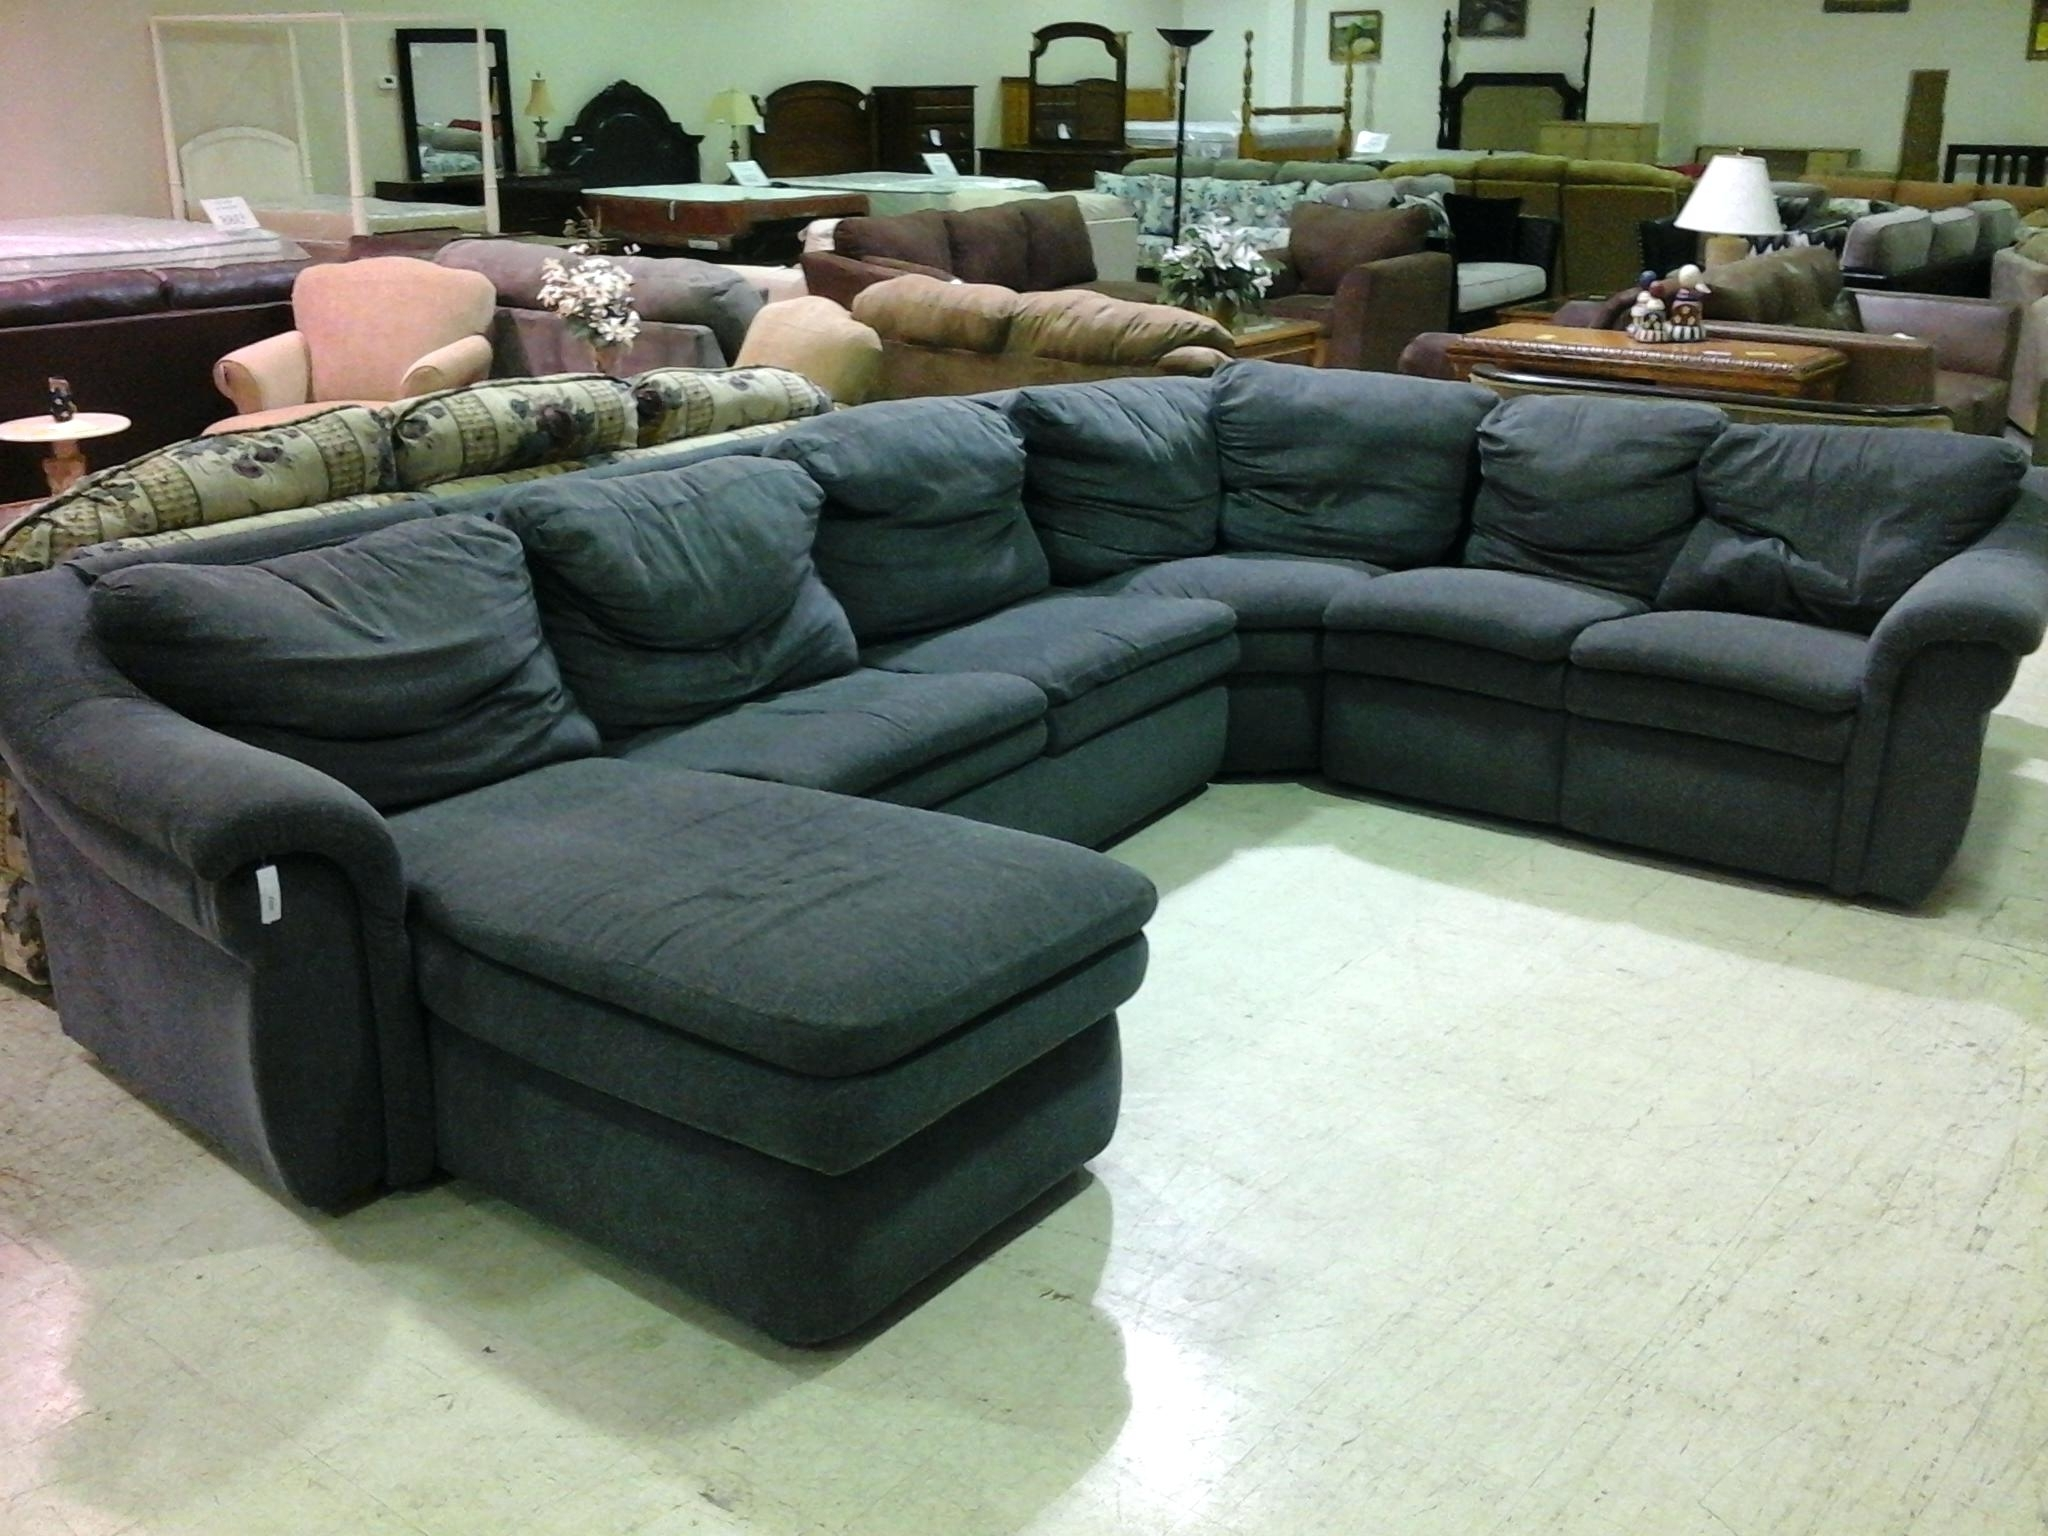 Clearance Sectional Sofas Intended For Well Known Sectional Sofa Sale Sa Couches For Near Me Liquidation Toronto (Gallery 20 of 20)